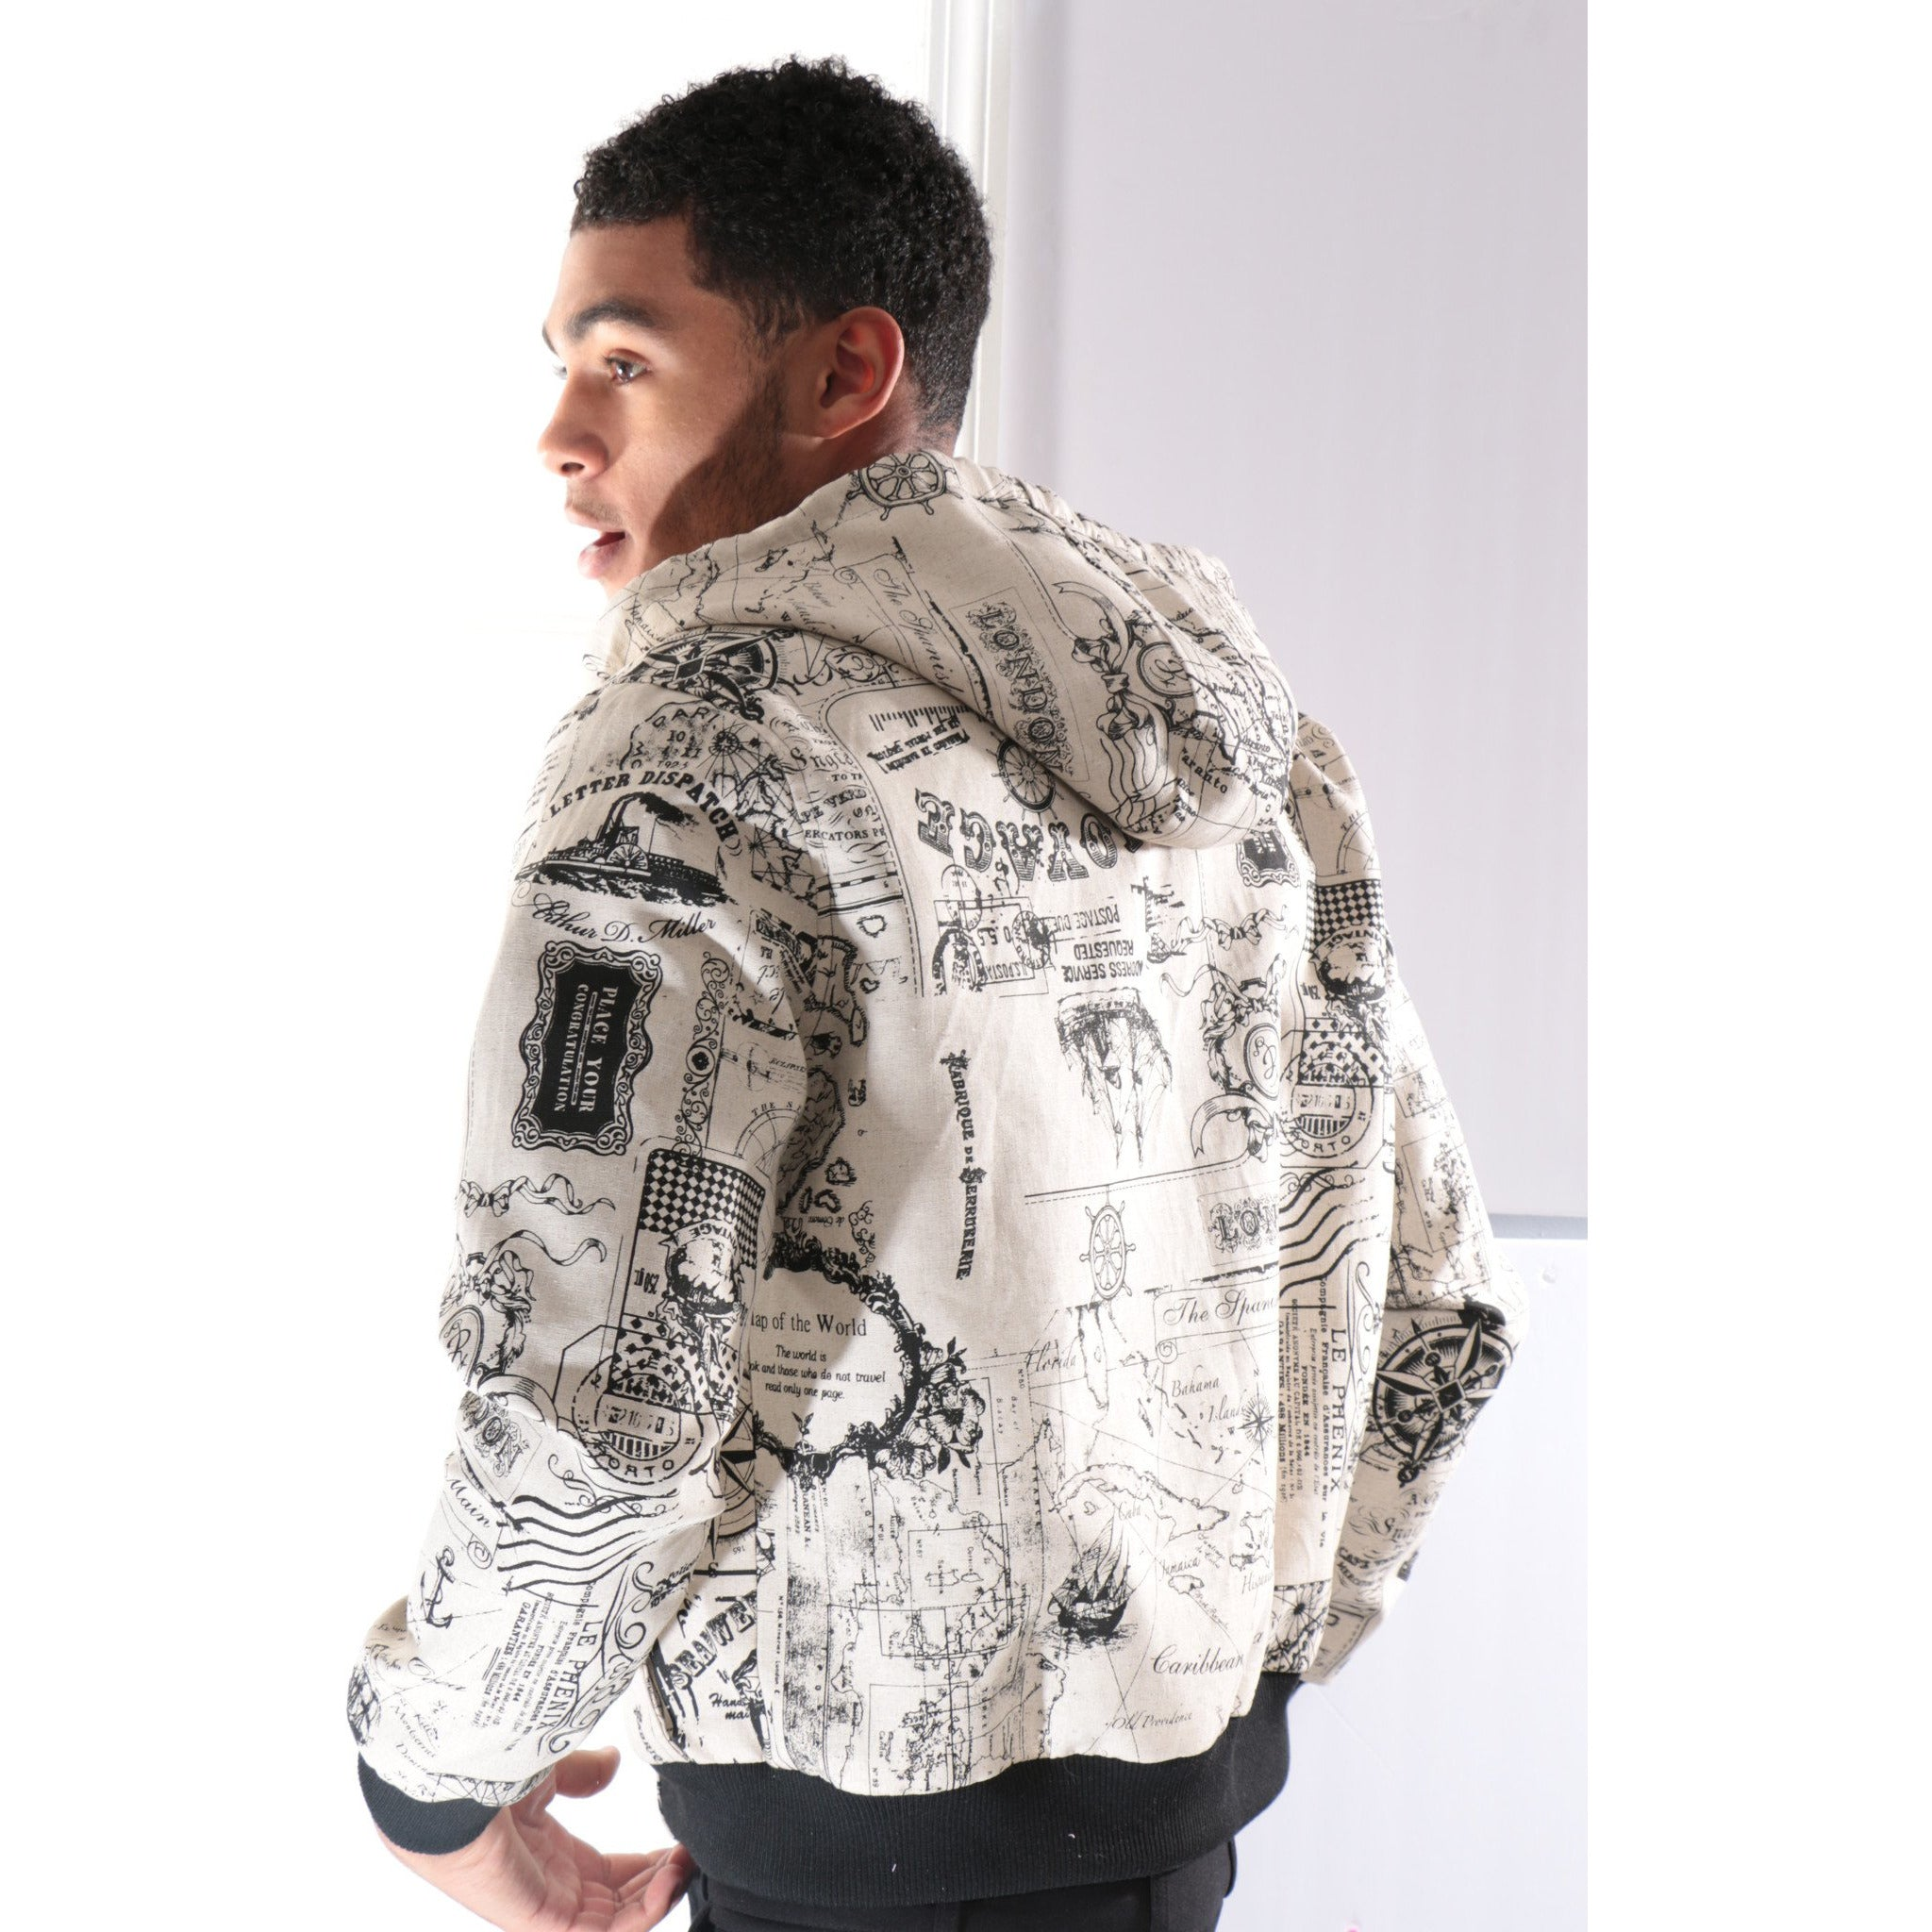 Bomber Jacket with Graphic writings and Hoodie